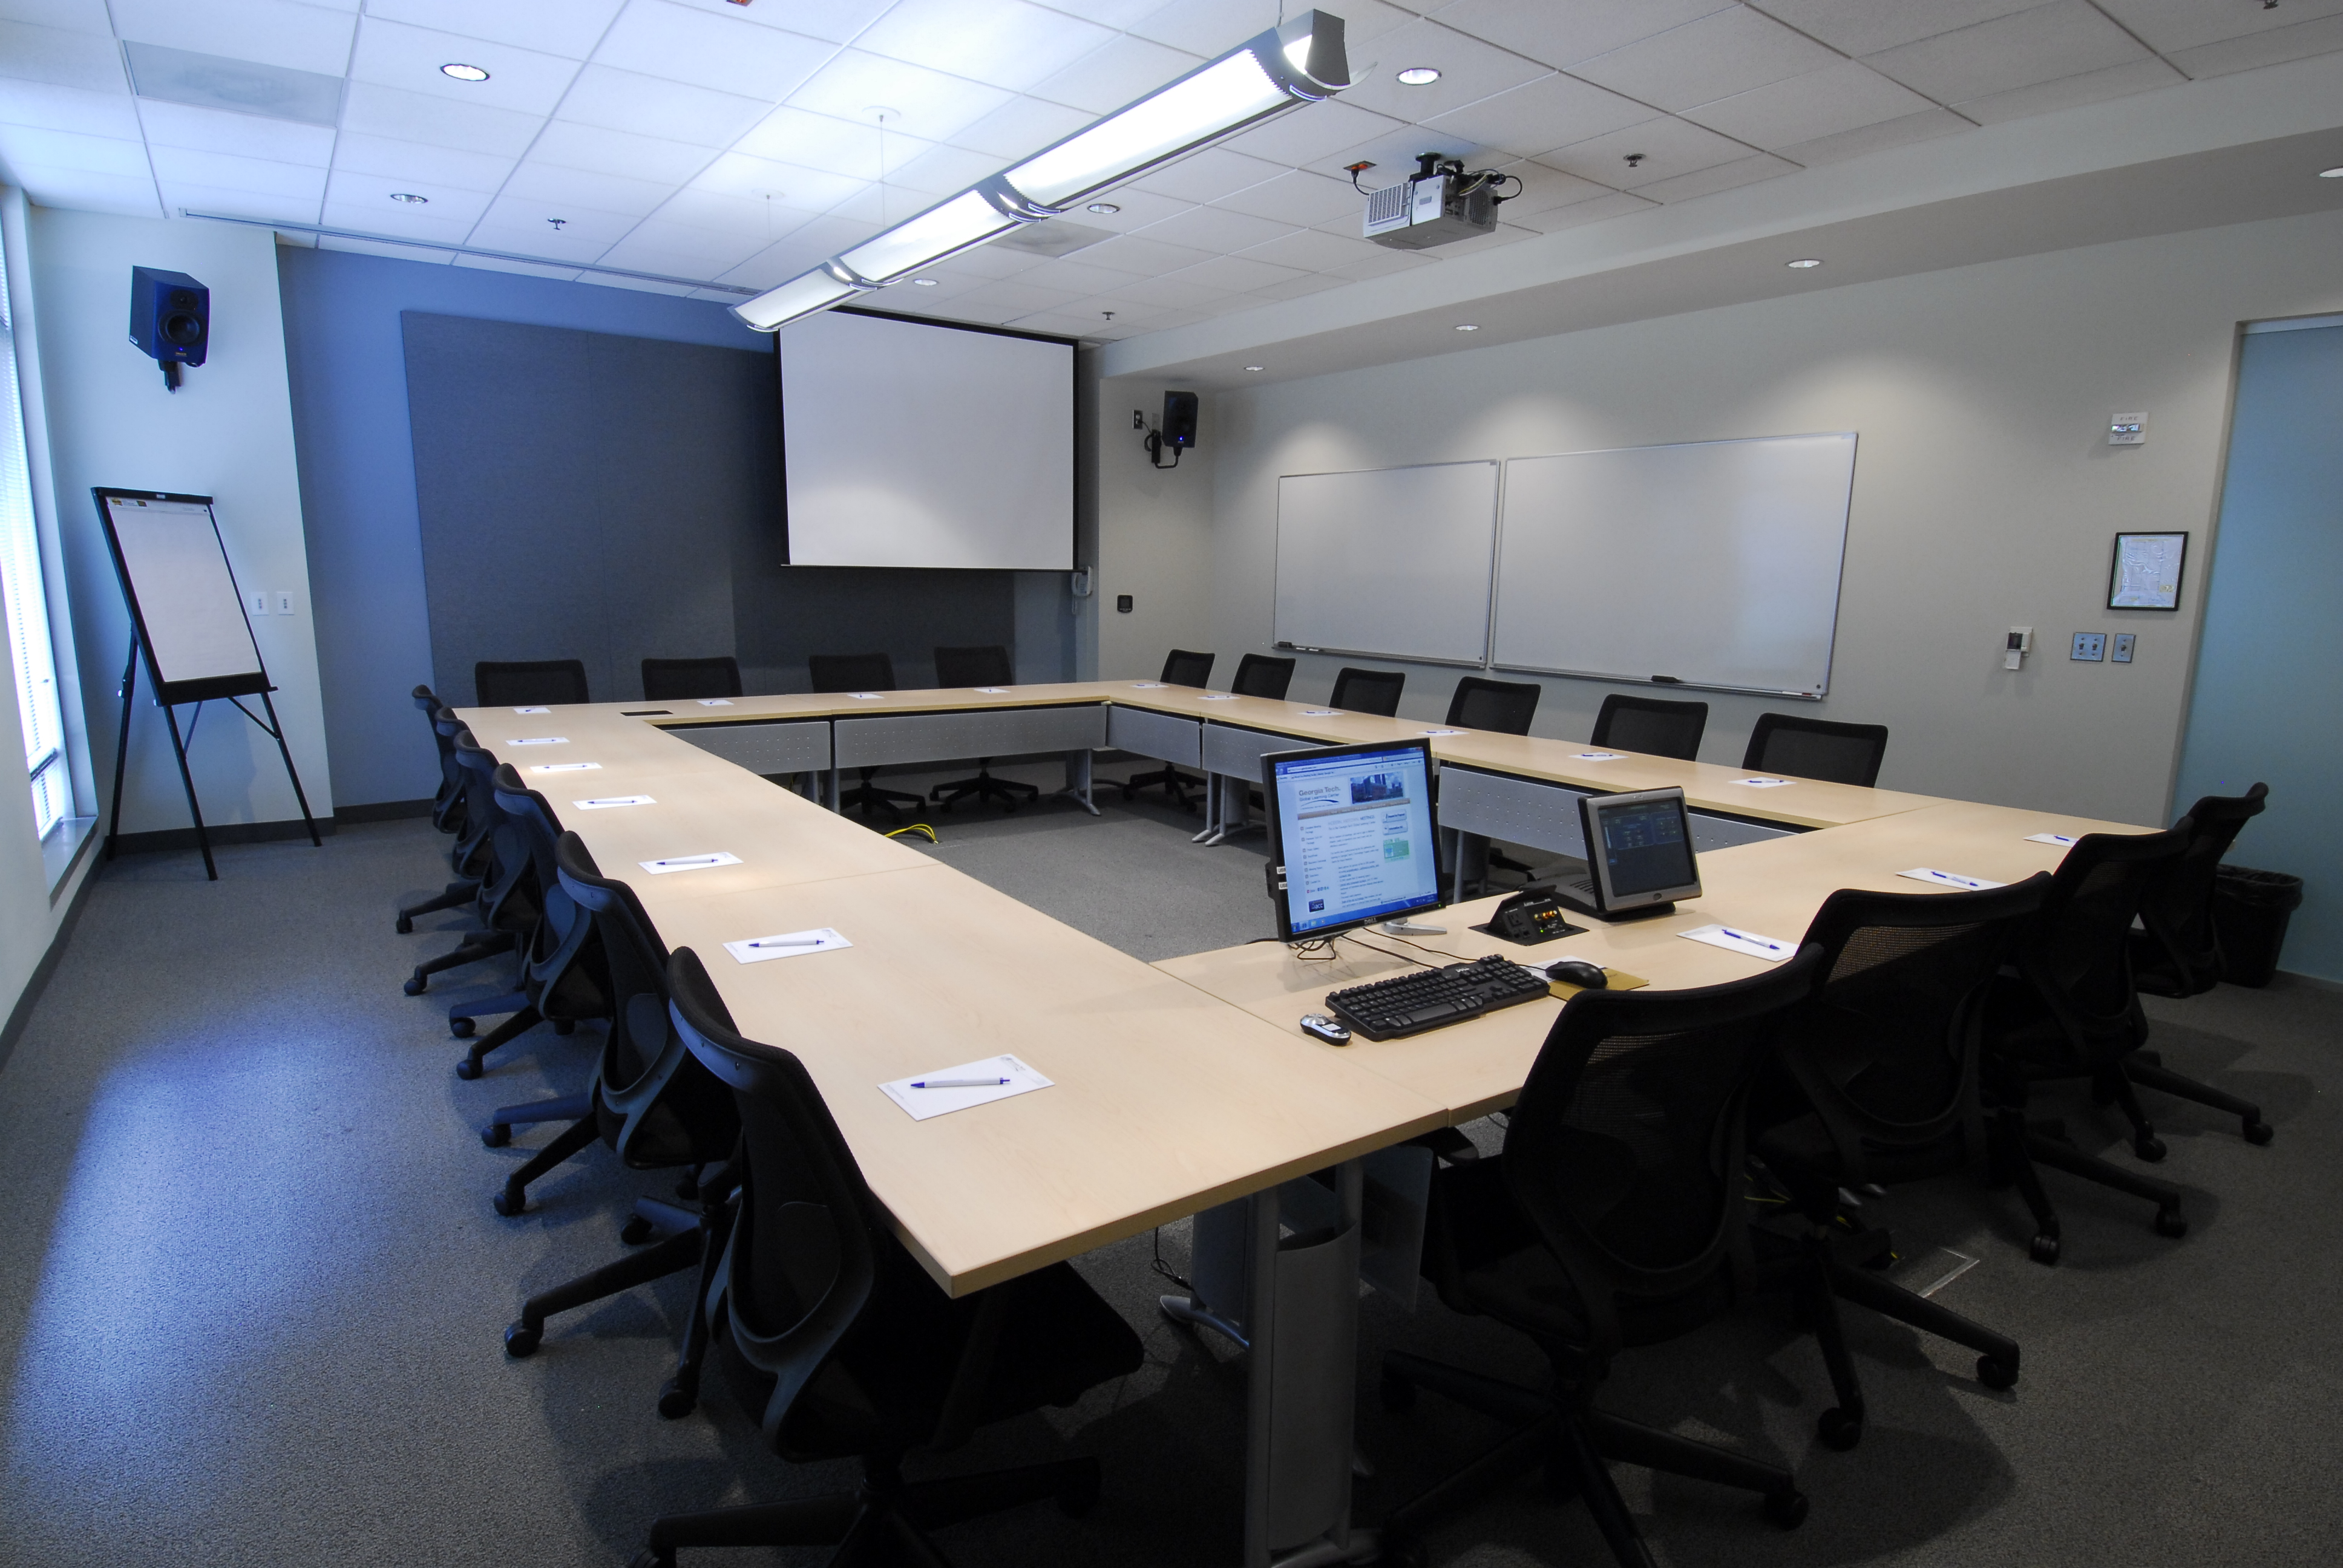 35 conference designs room chairs